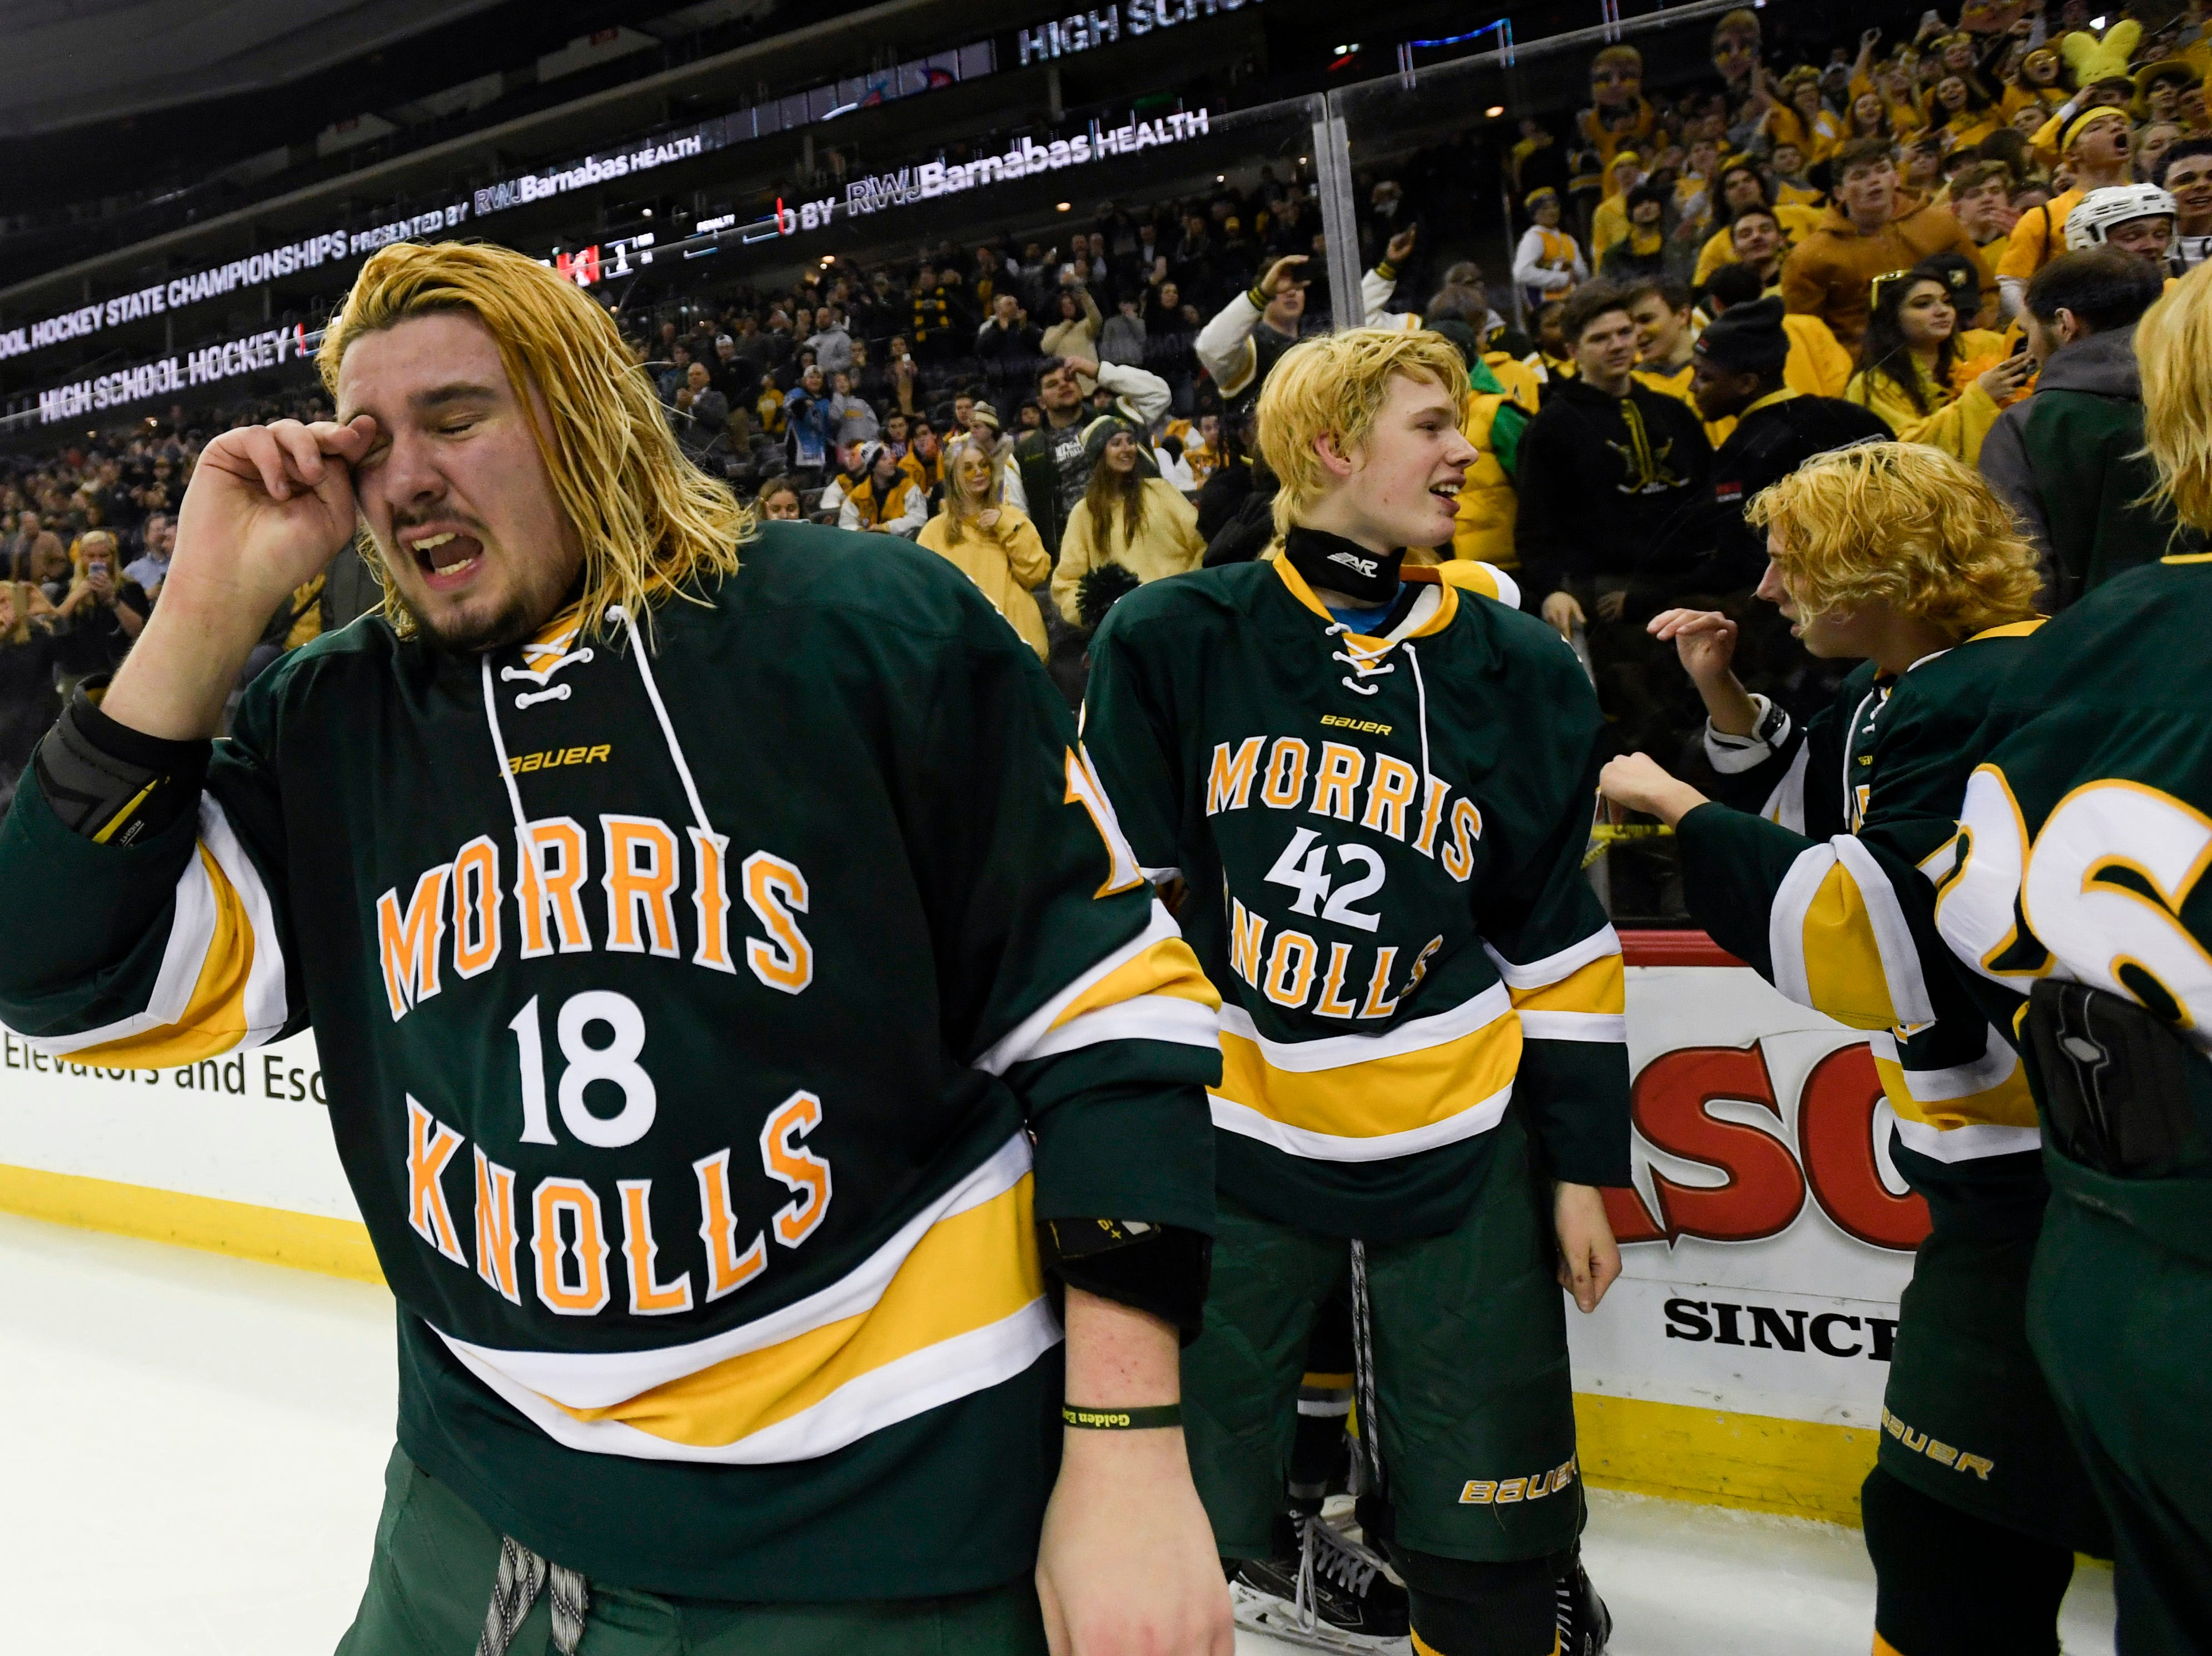 Morris Knolls/Hills? Jason Moskowitz (18) cries after winning the Public A ice hockey title over Hillsborough at the Prudential Center on Monday, March 4, 2019, in Newark.